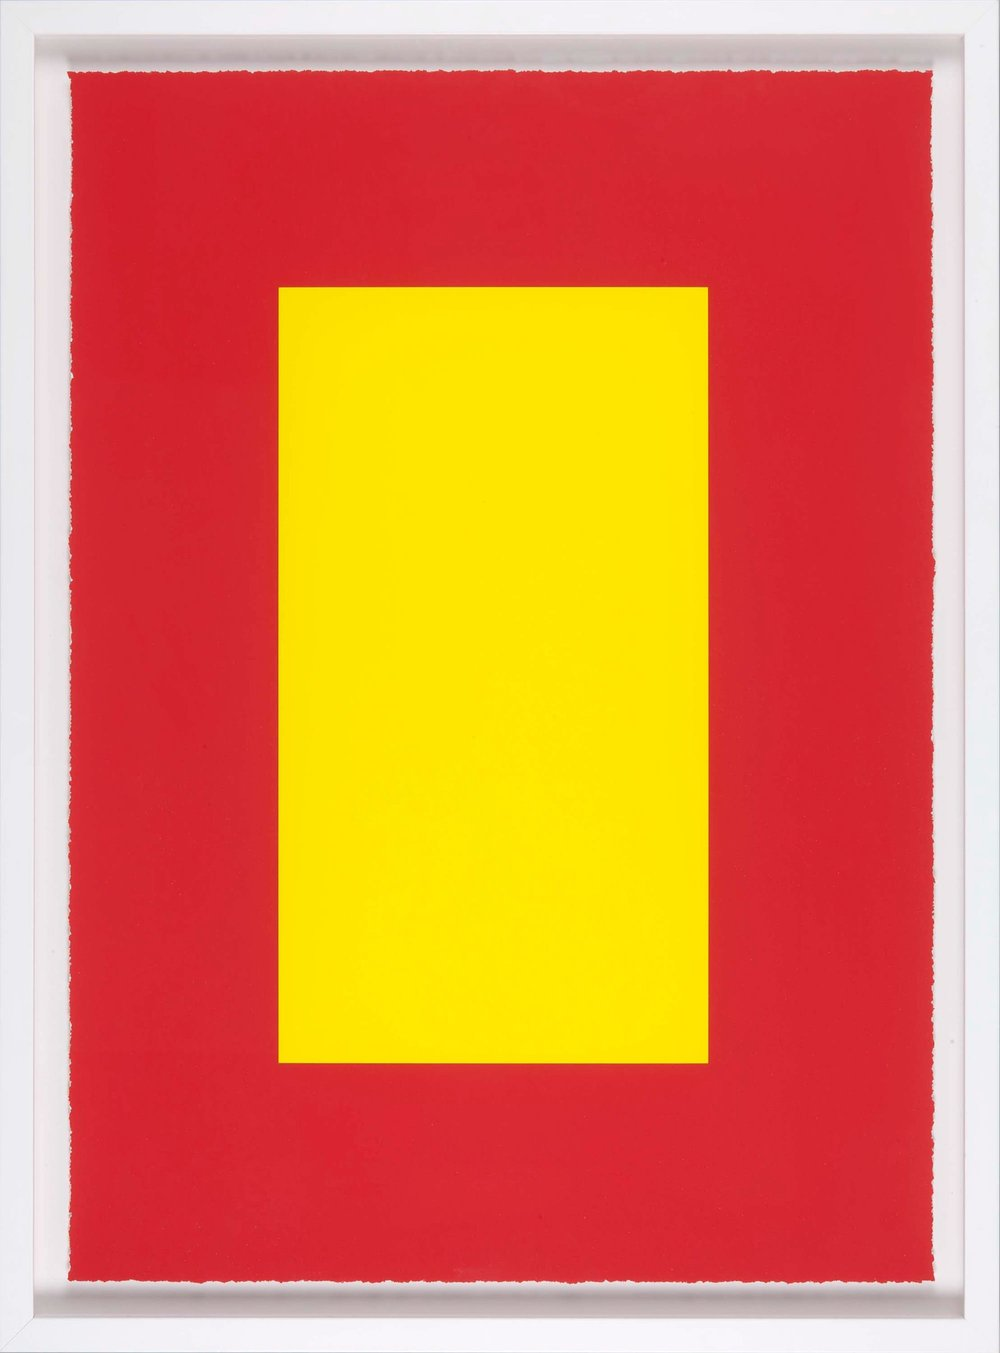 Julian Dashper  Untitled (Self Portrait as Donald Judd) , 2008 Digital print on cotton rag paper, framed, 700 x 500 mm